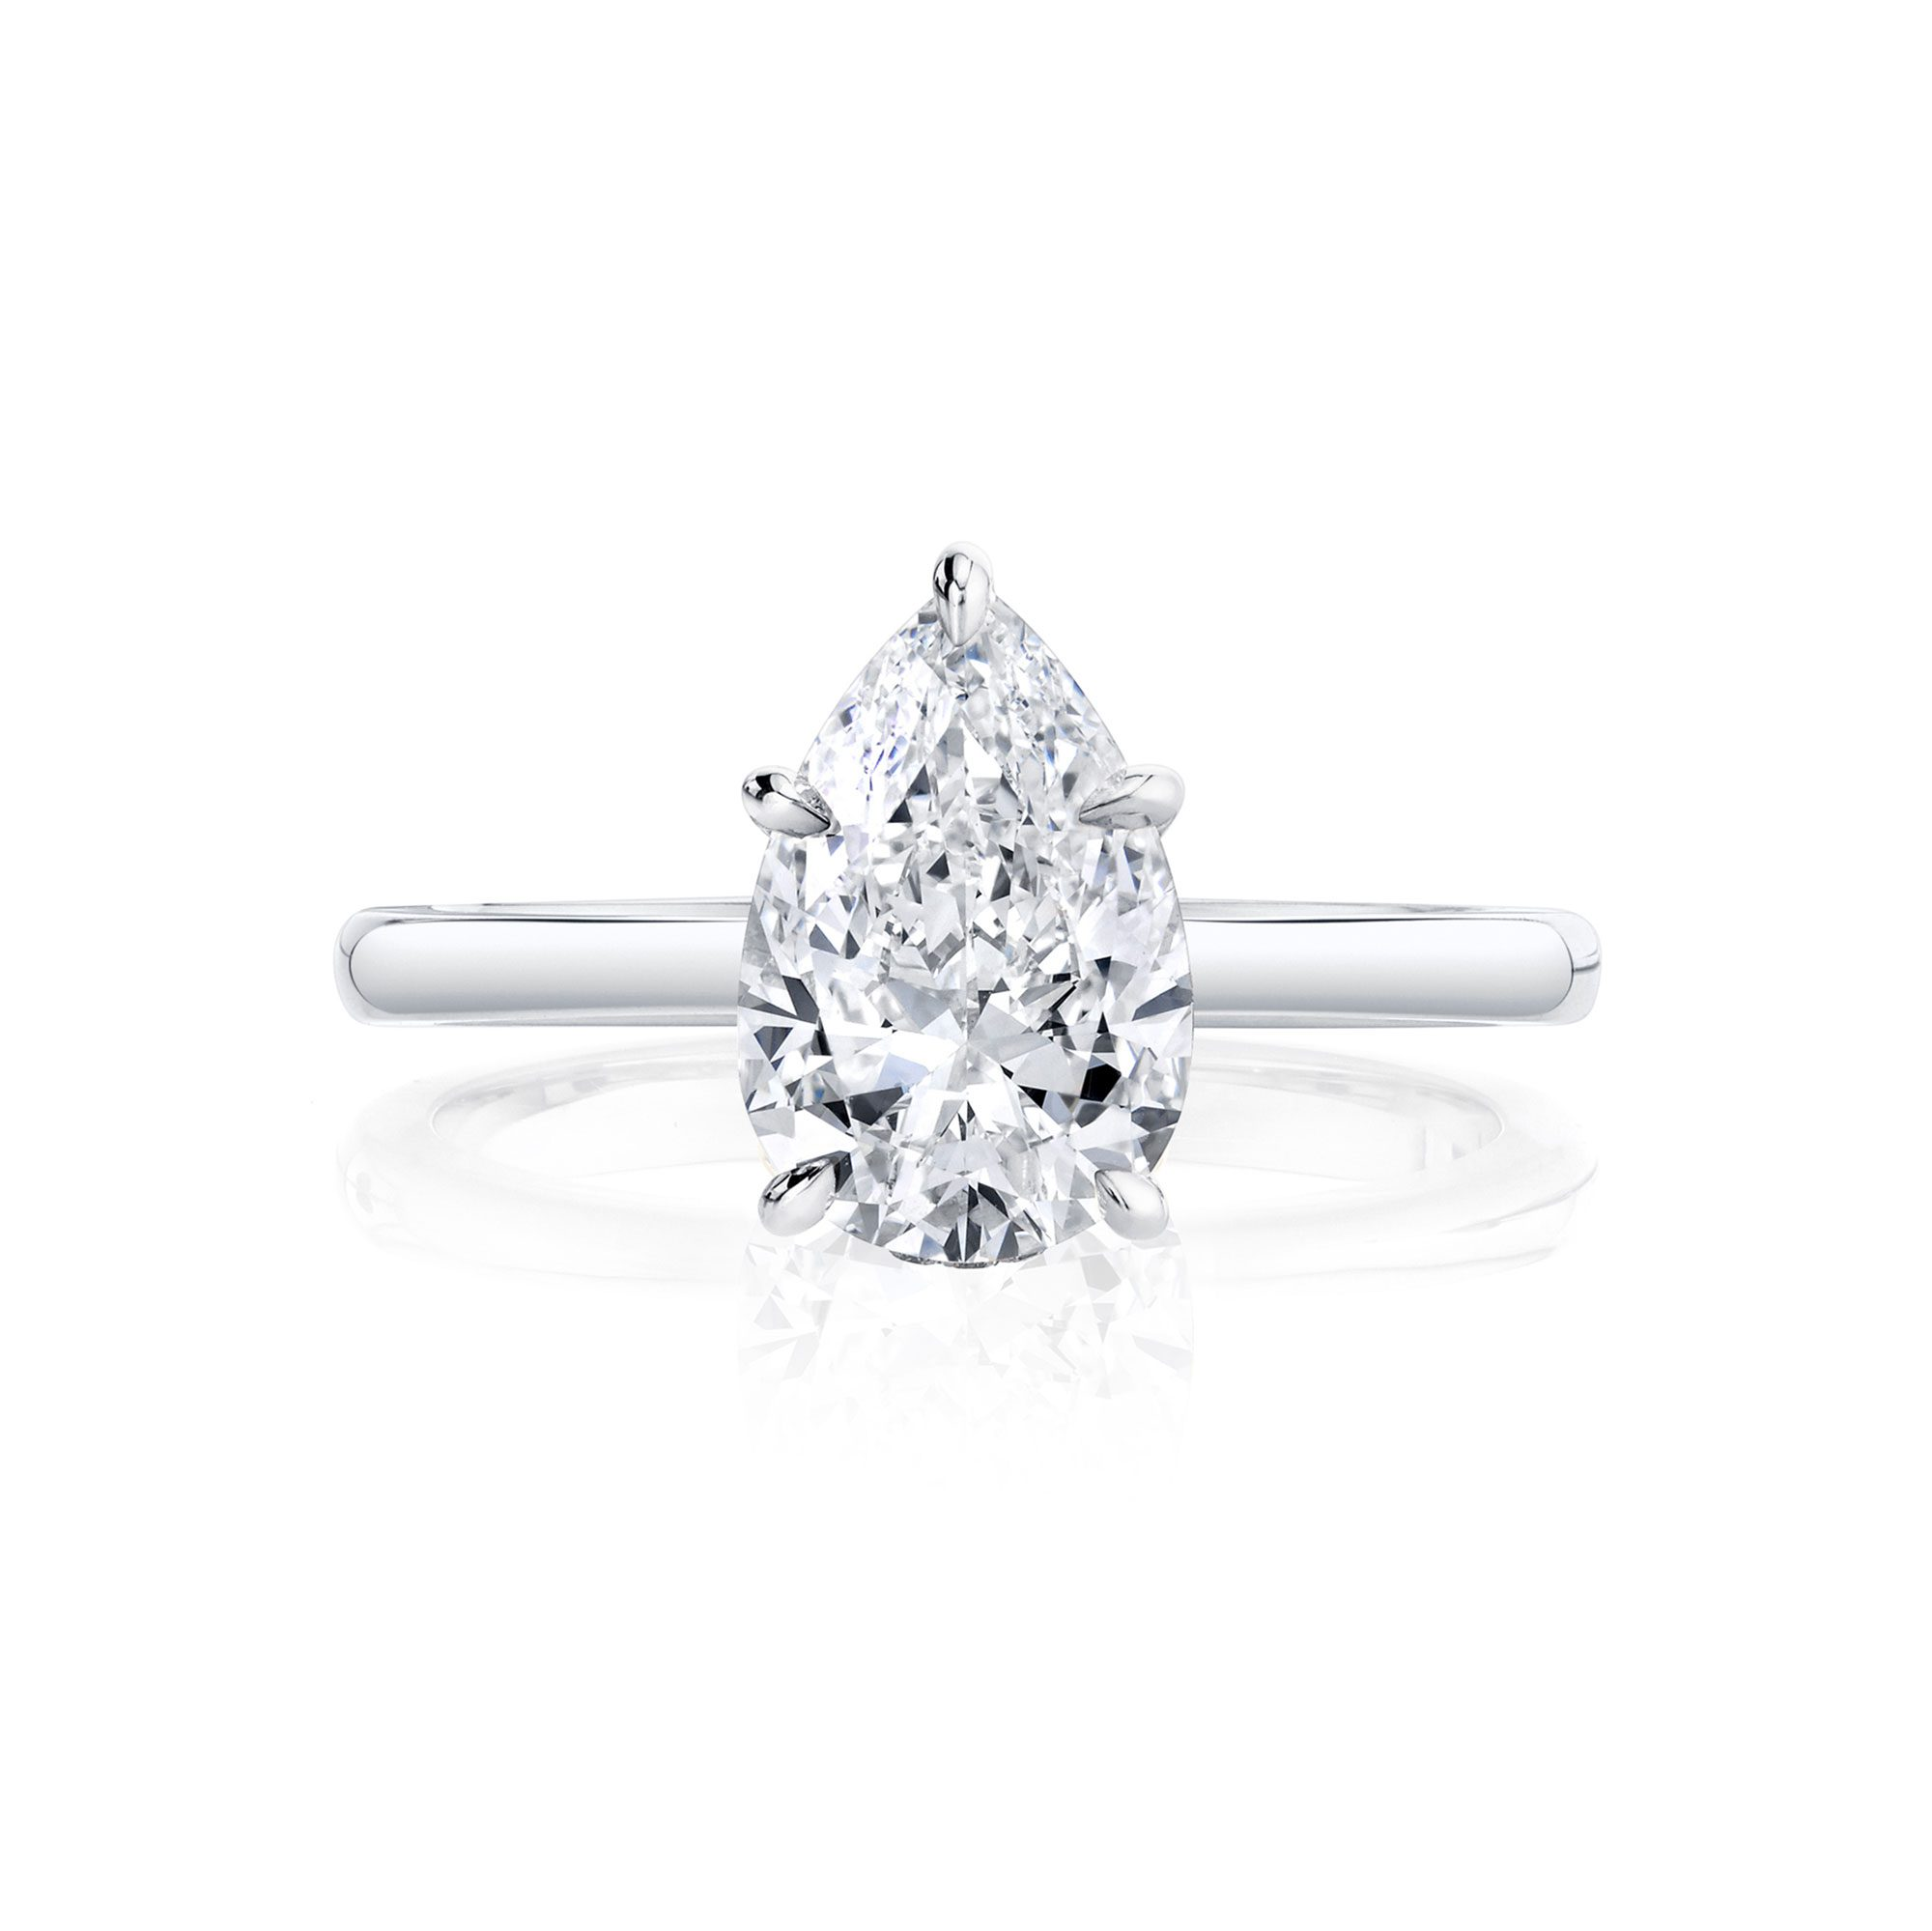 Colette Solitaire Pear Cut Lab Grown Diamond Engagement Ring in 18k white gold band